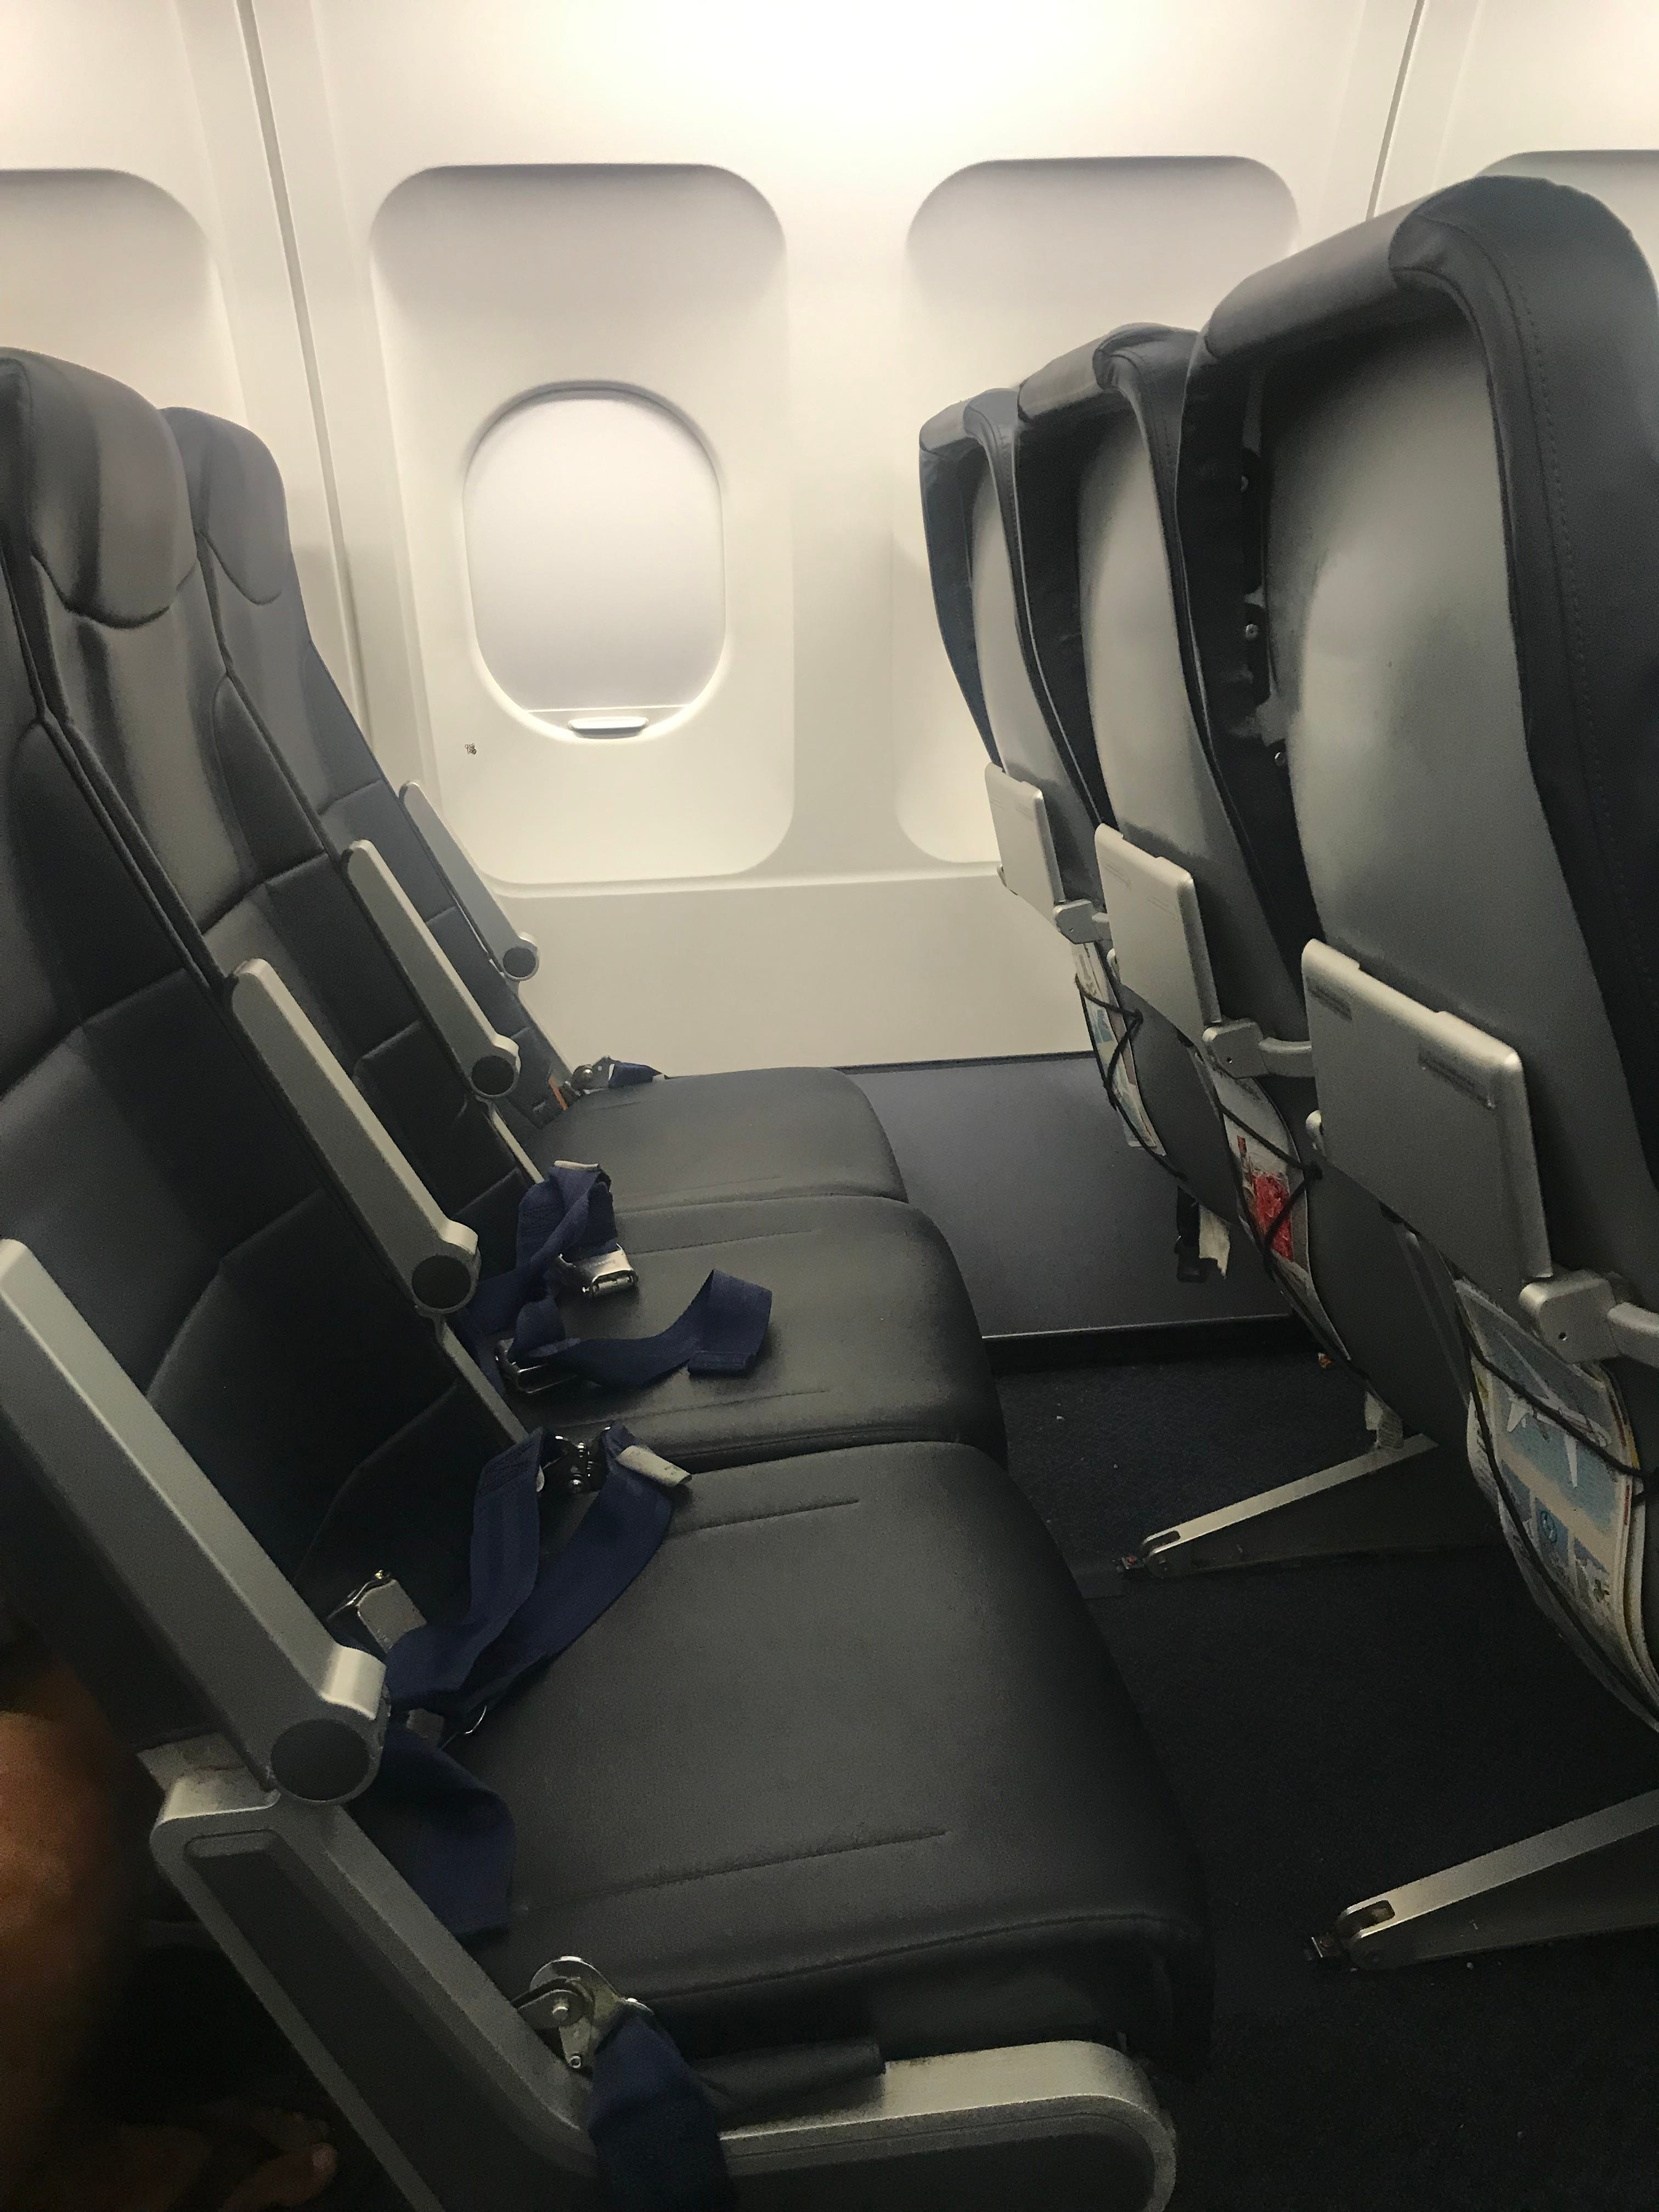 Magnificent Spirit Airlines Tips 13 Dos And Donts From Flight Deals Uwap Interior Chair Design Uwaporg